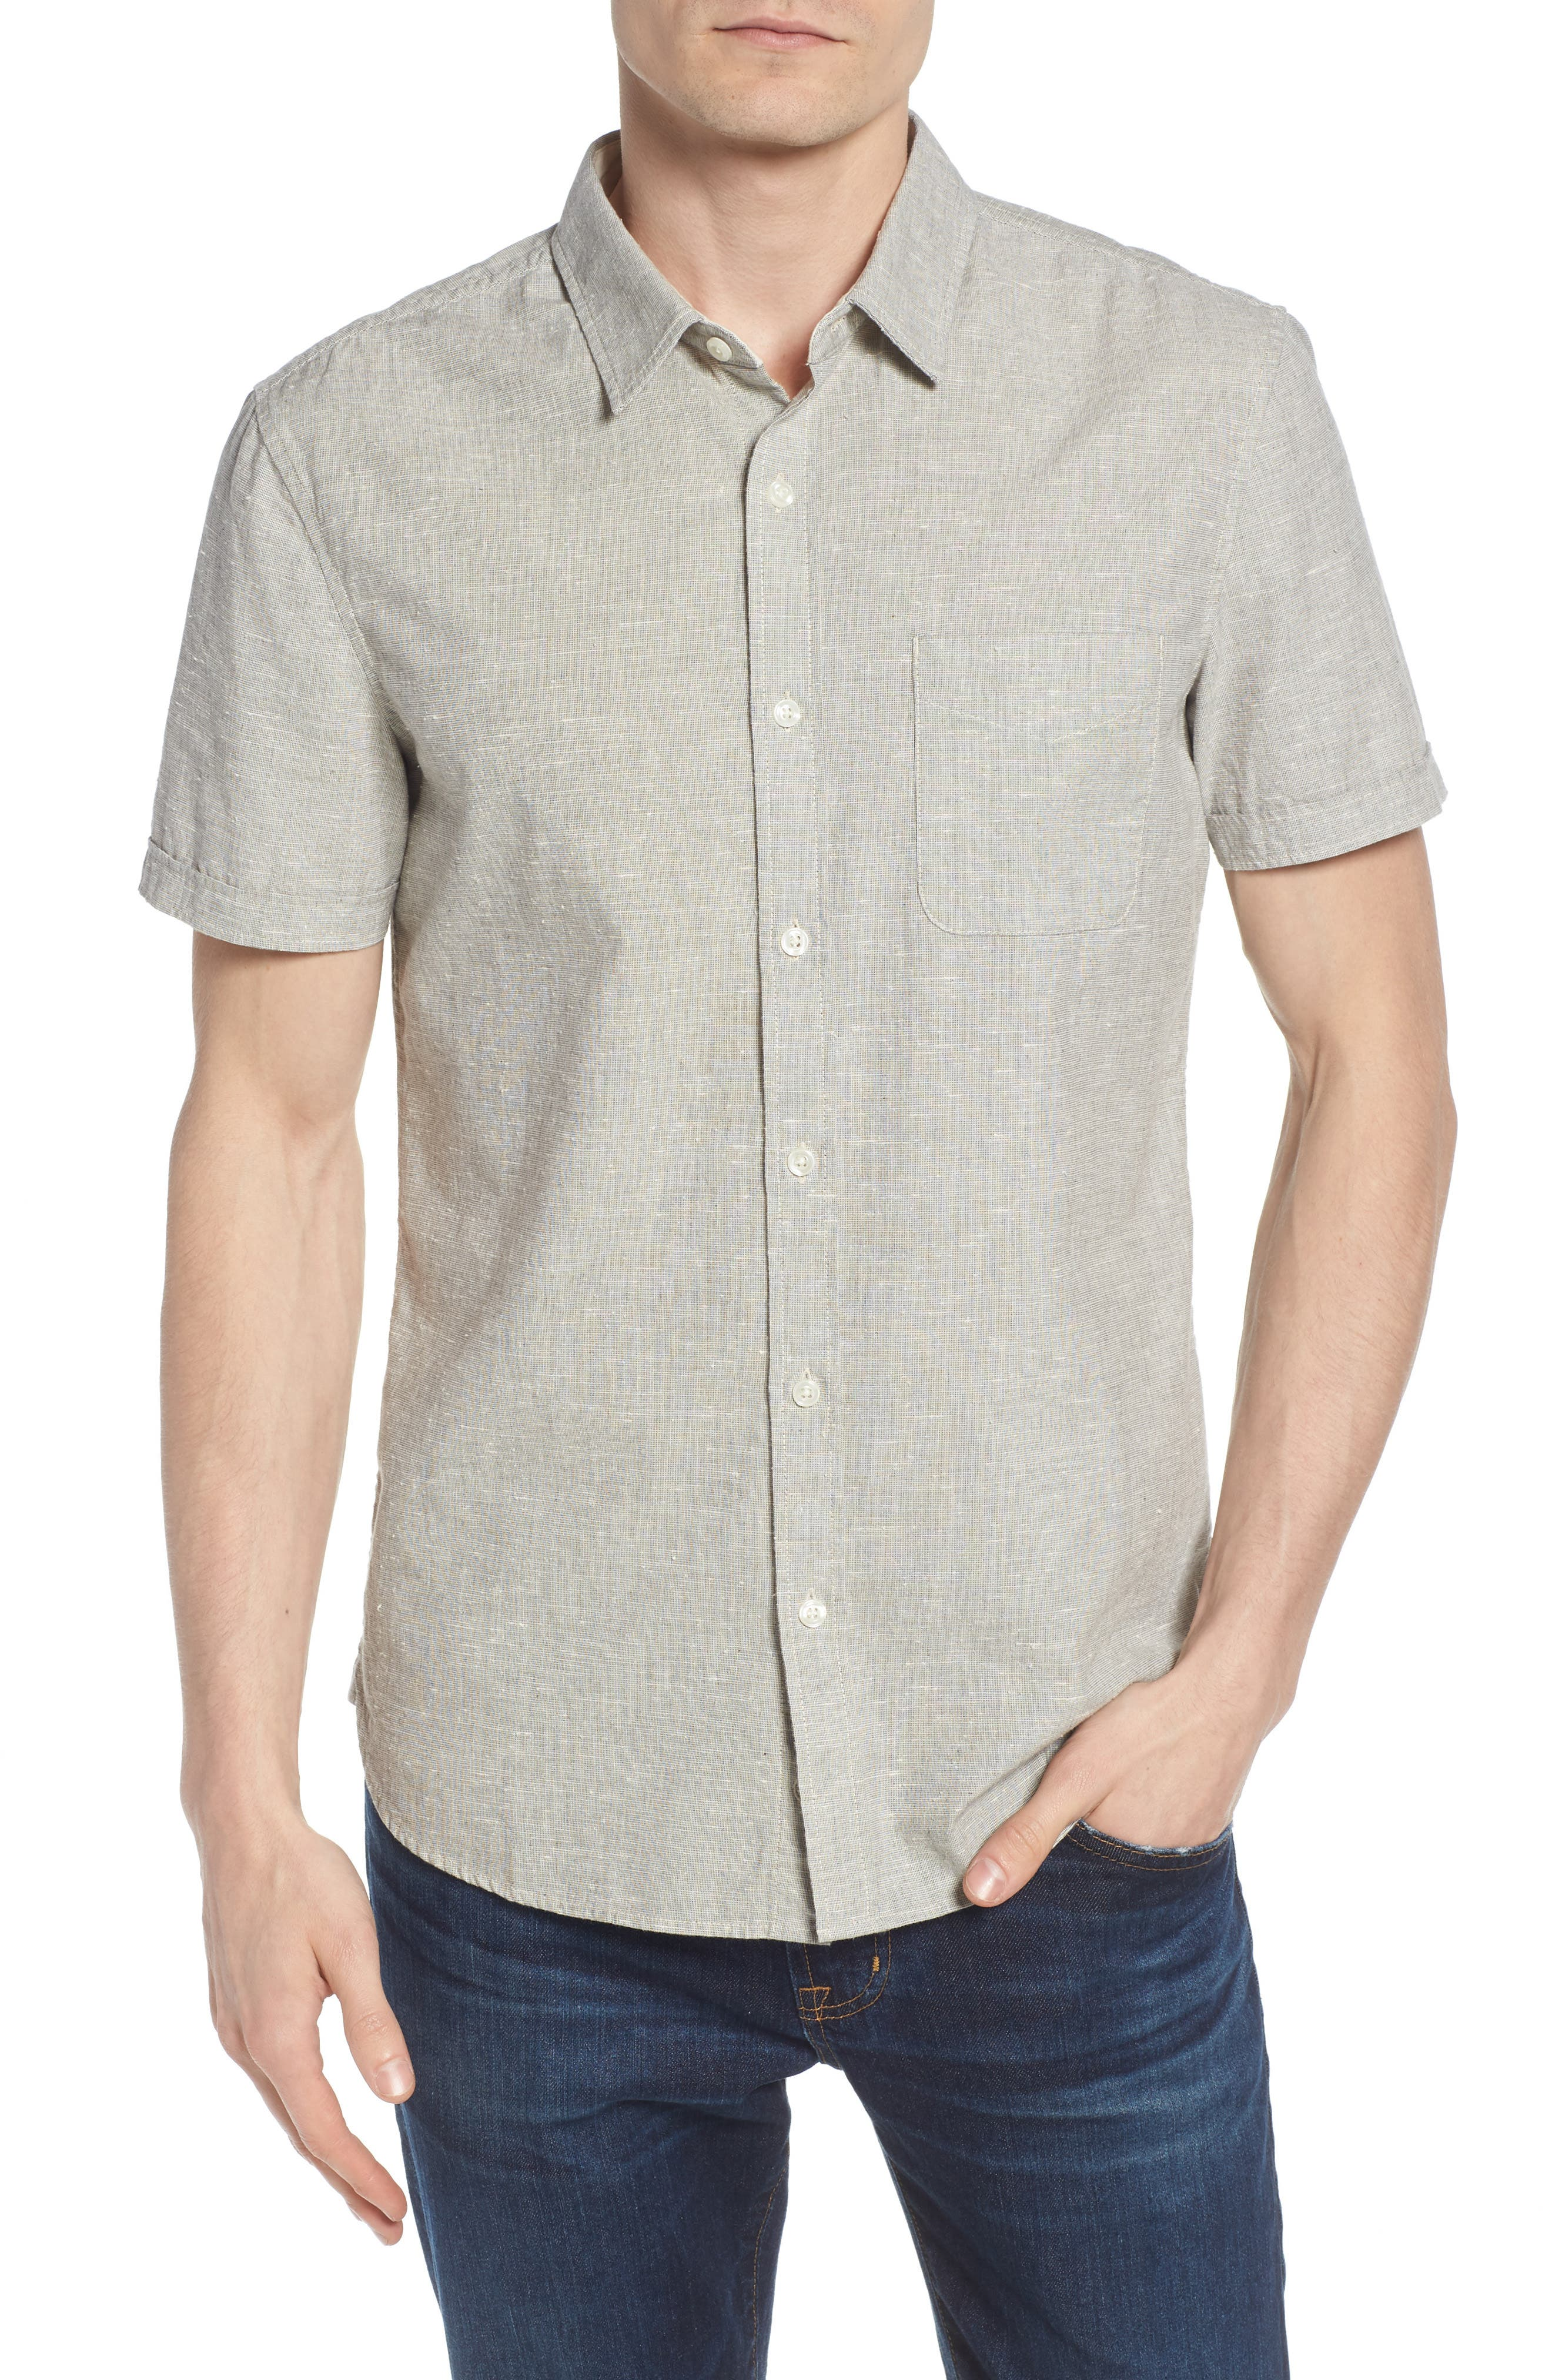 Pearson Regular Fit Short Sleeve Sport Shirt,                         Main,                         color, Smoke Grey